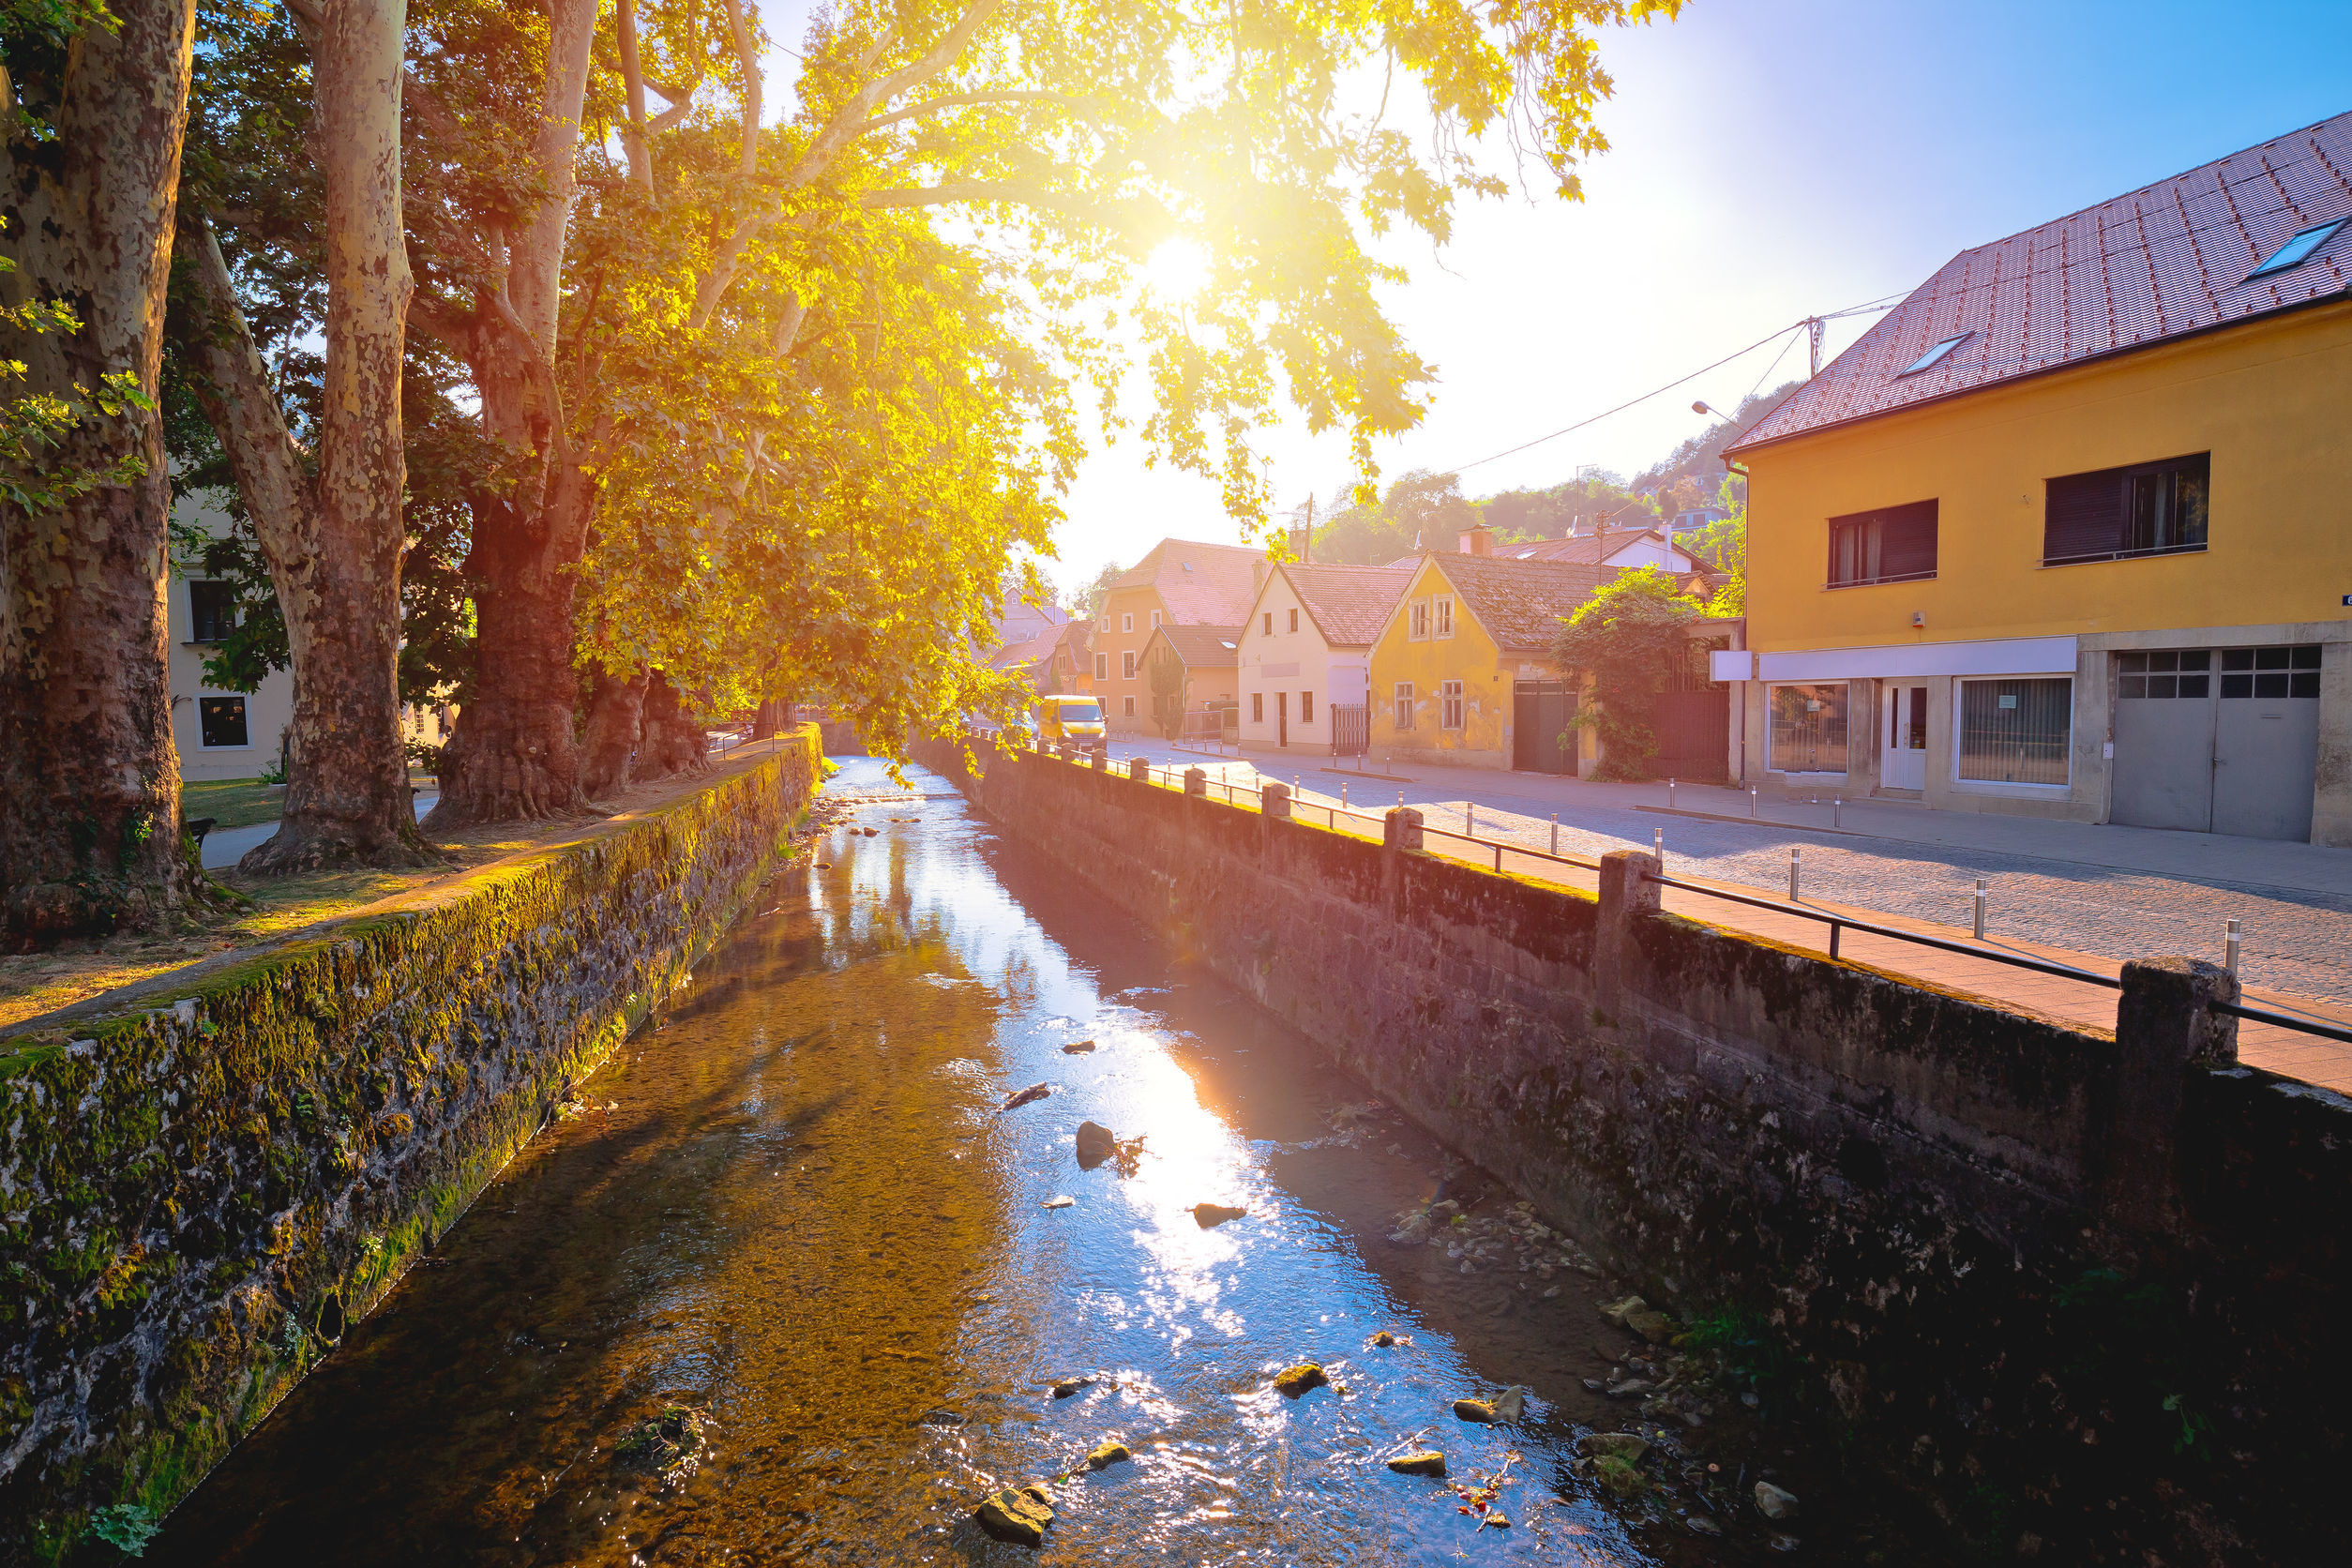 The best things to do in Samobor